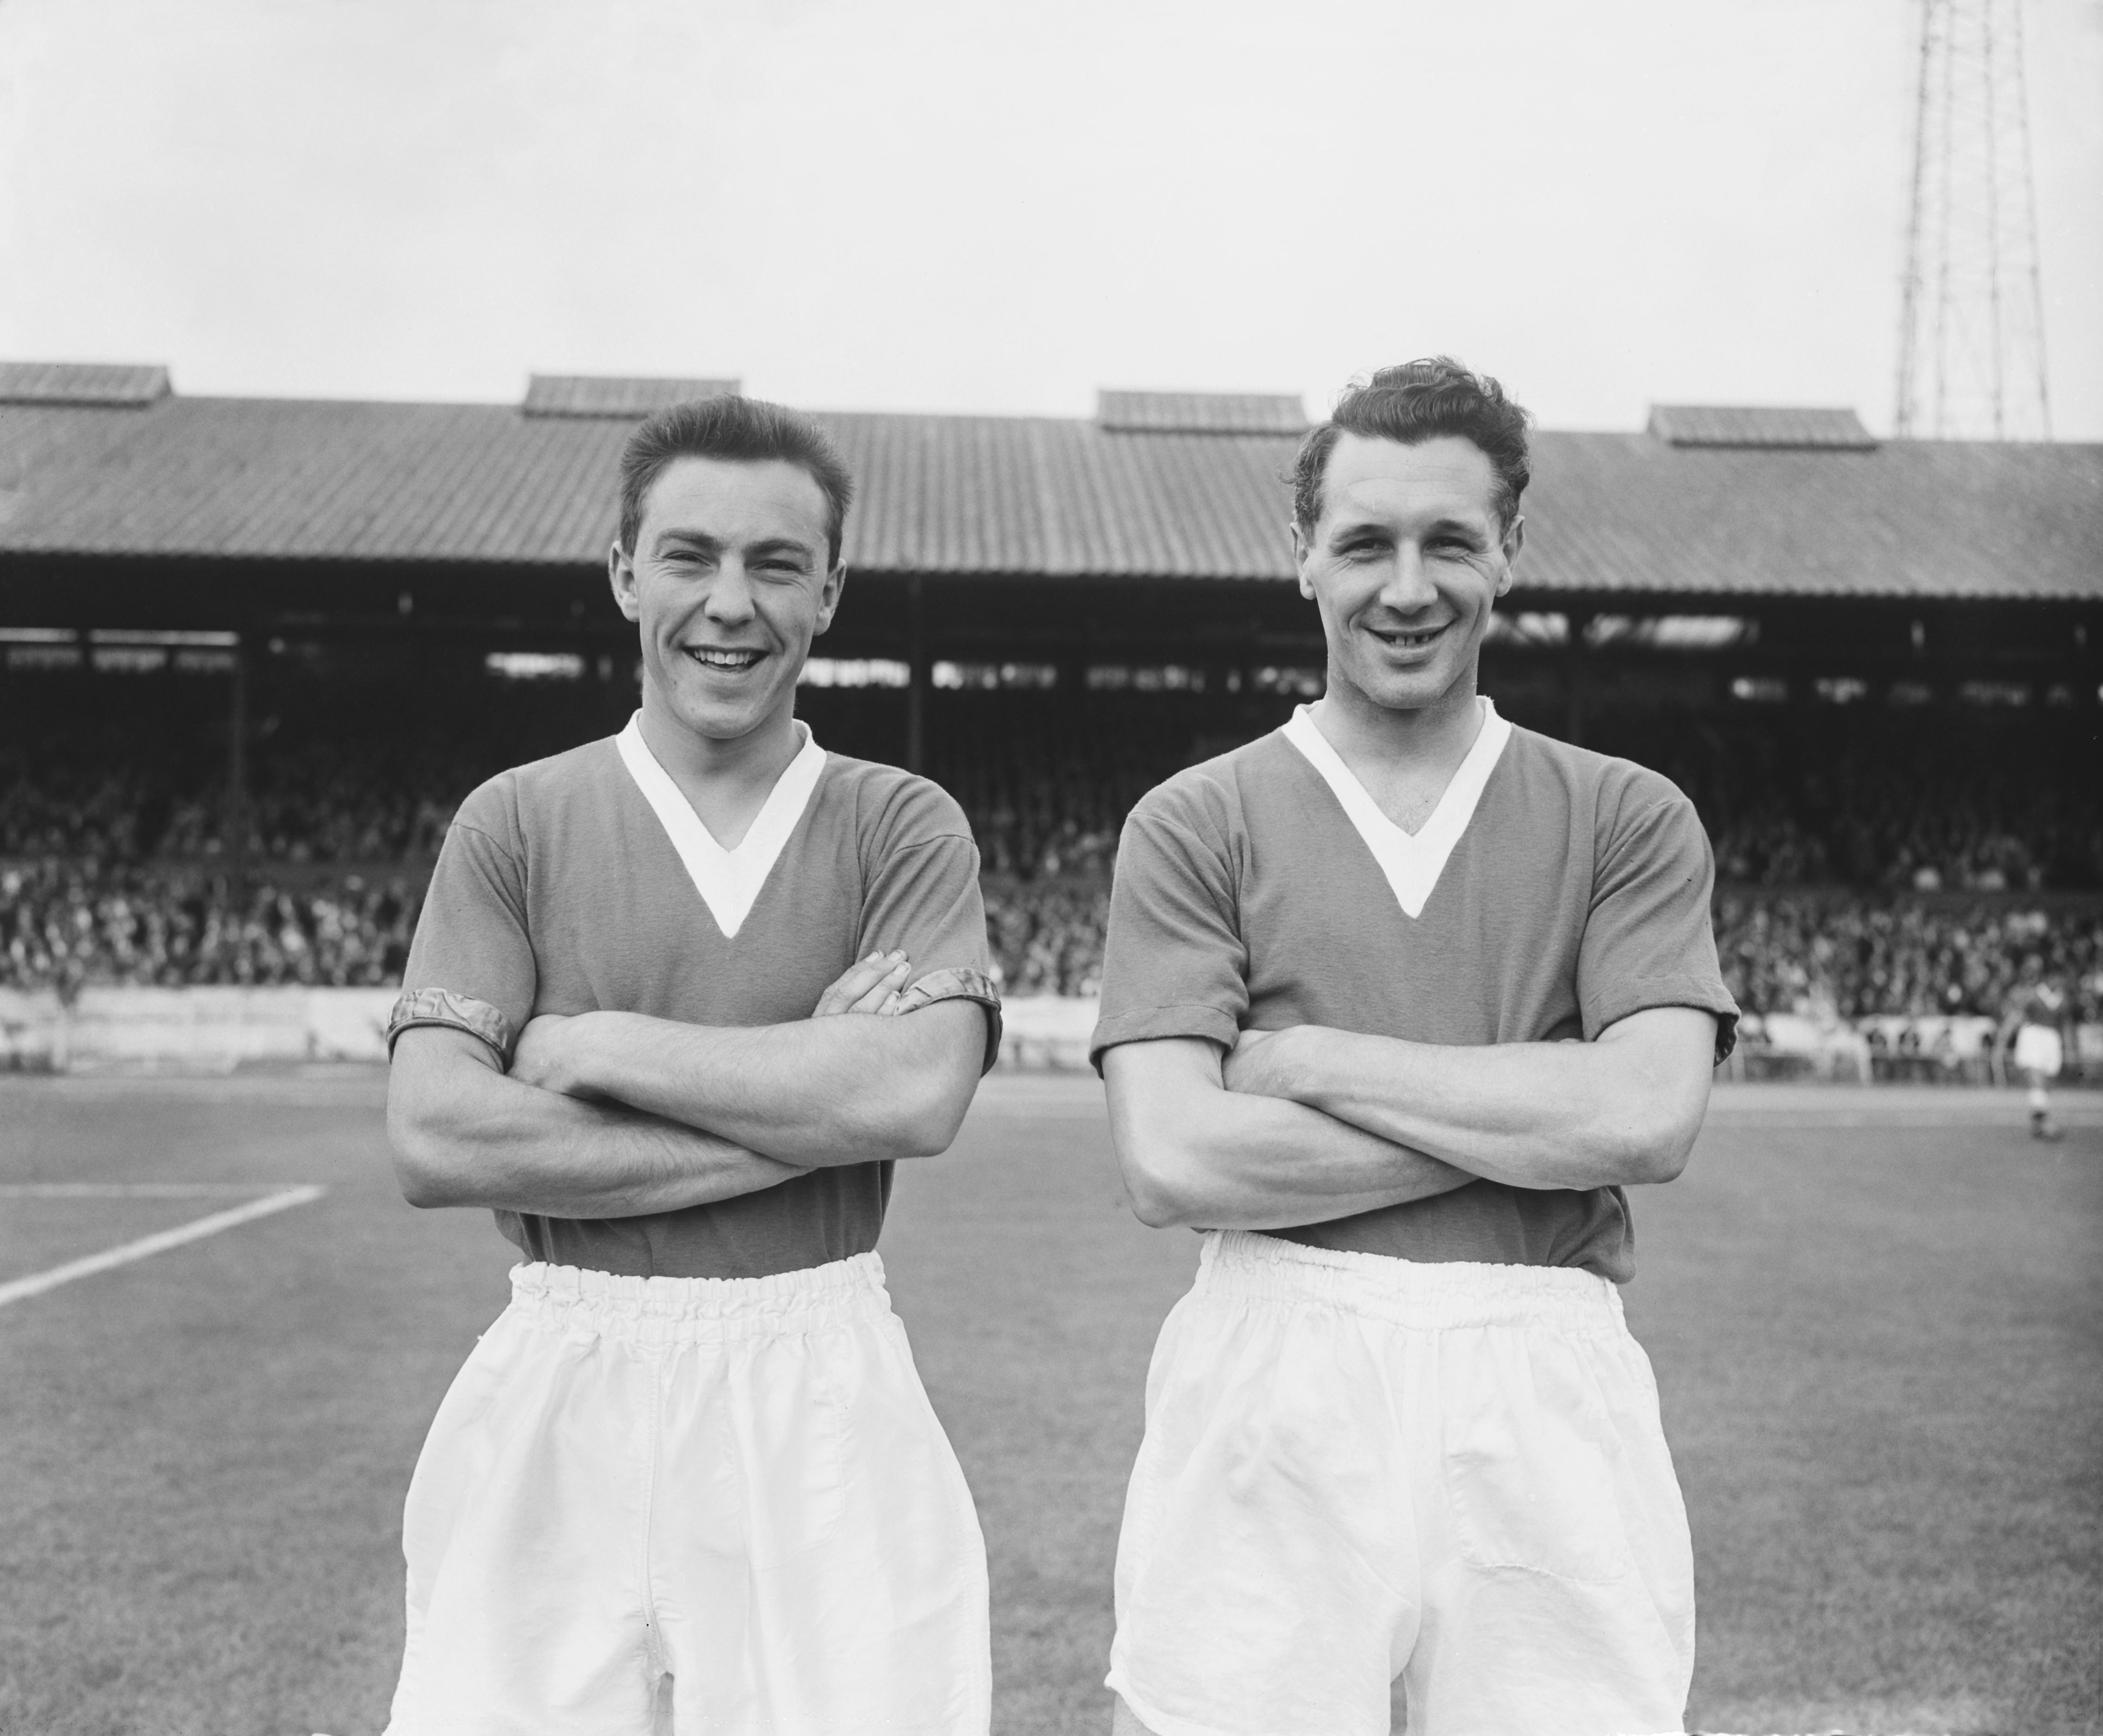 Footballers Jimmy Greaves (left) and Jim Lewis of Chelsea FC, 1957. (Photo by Central Press/Hulton Archive/Getty Images)